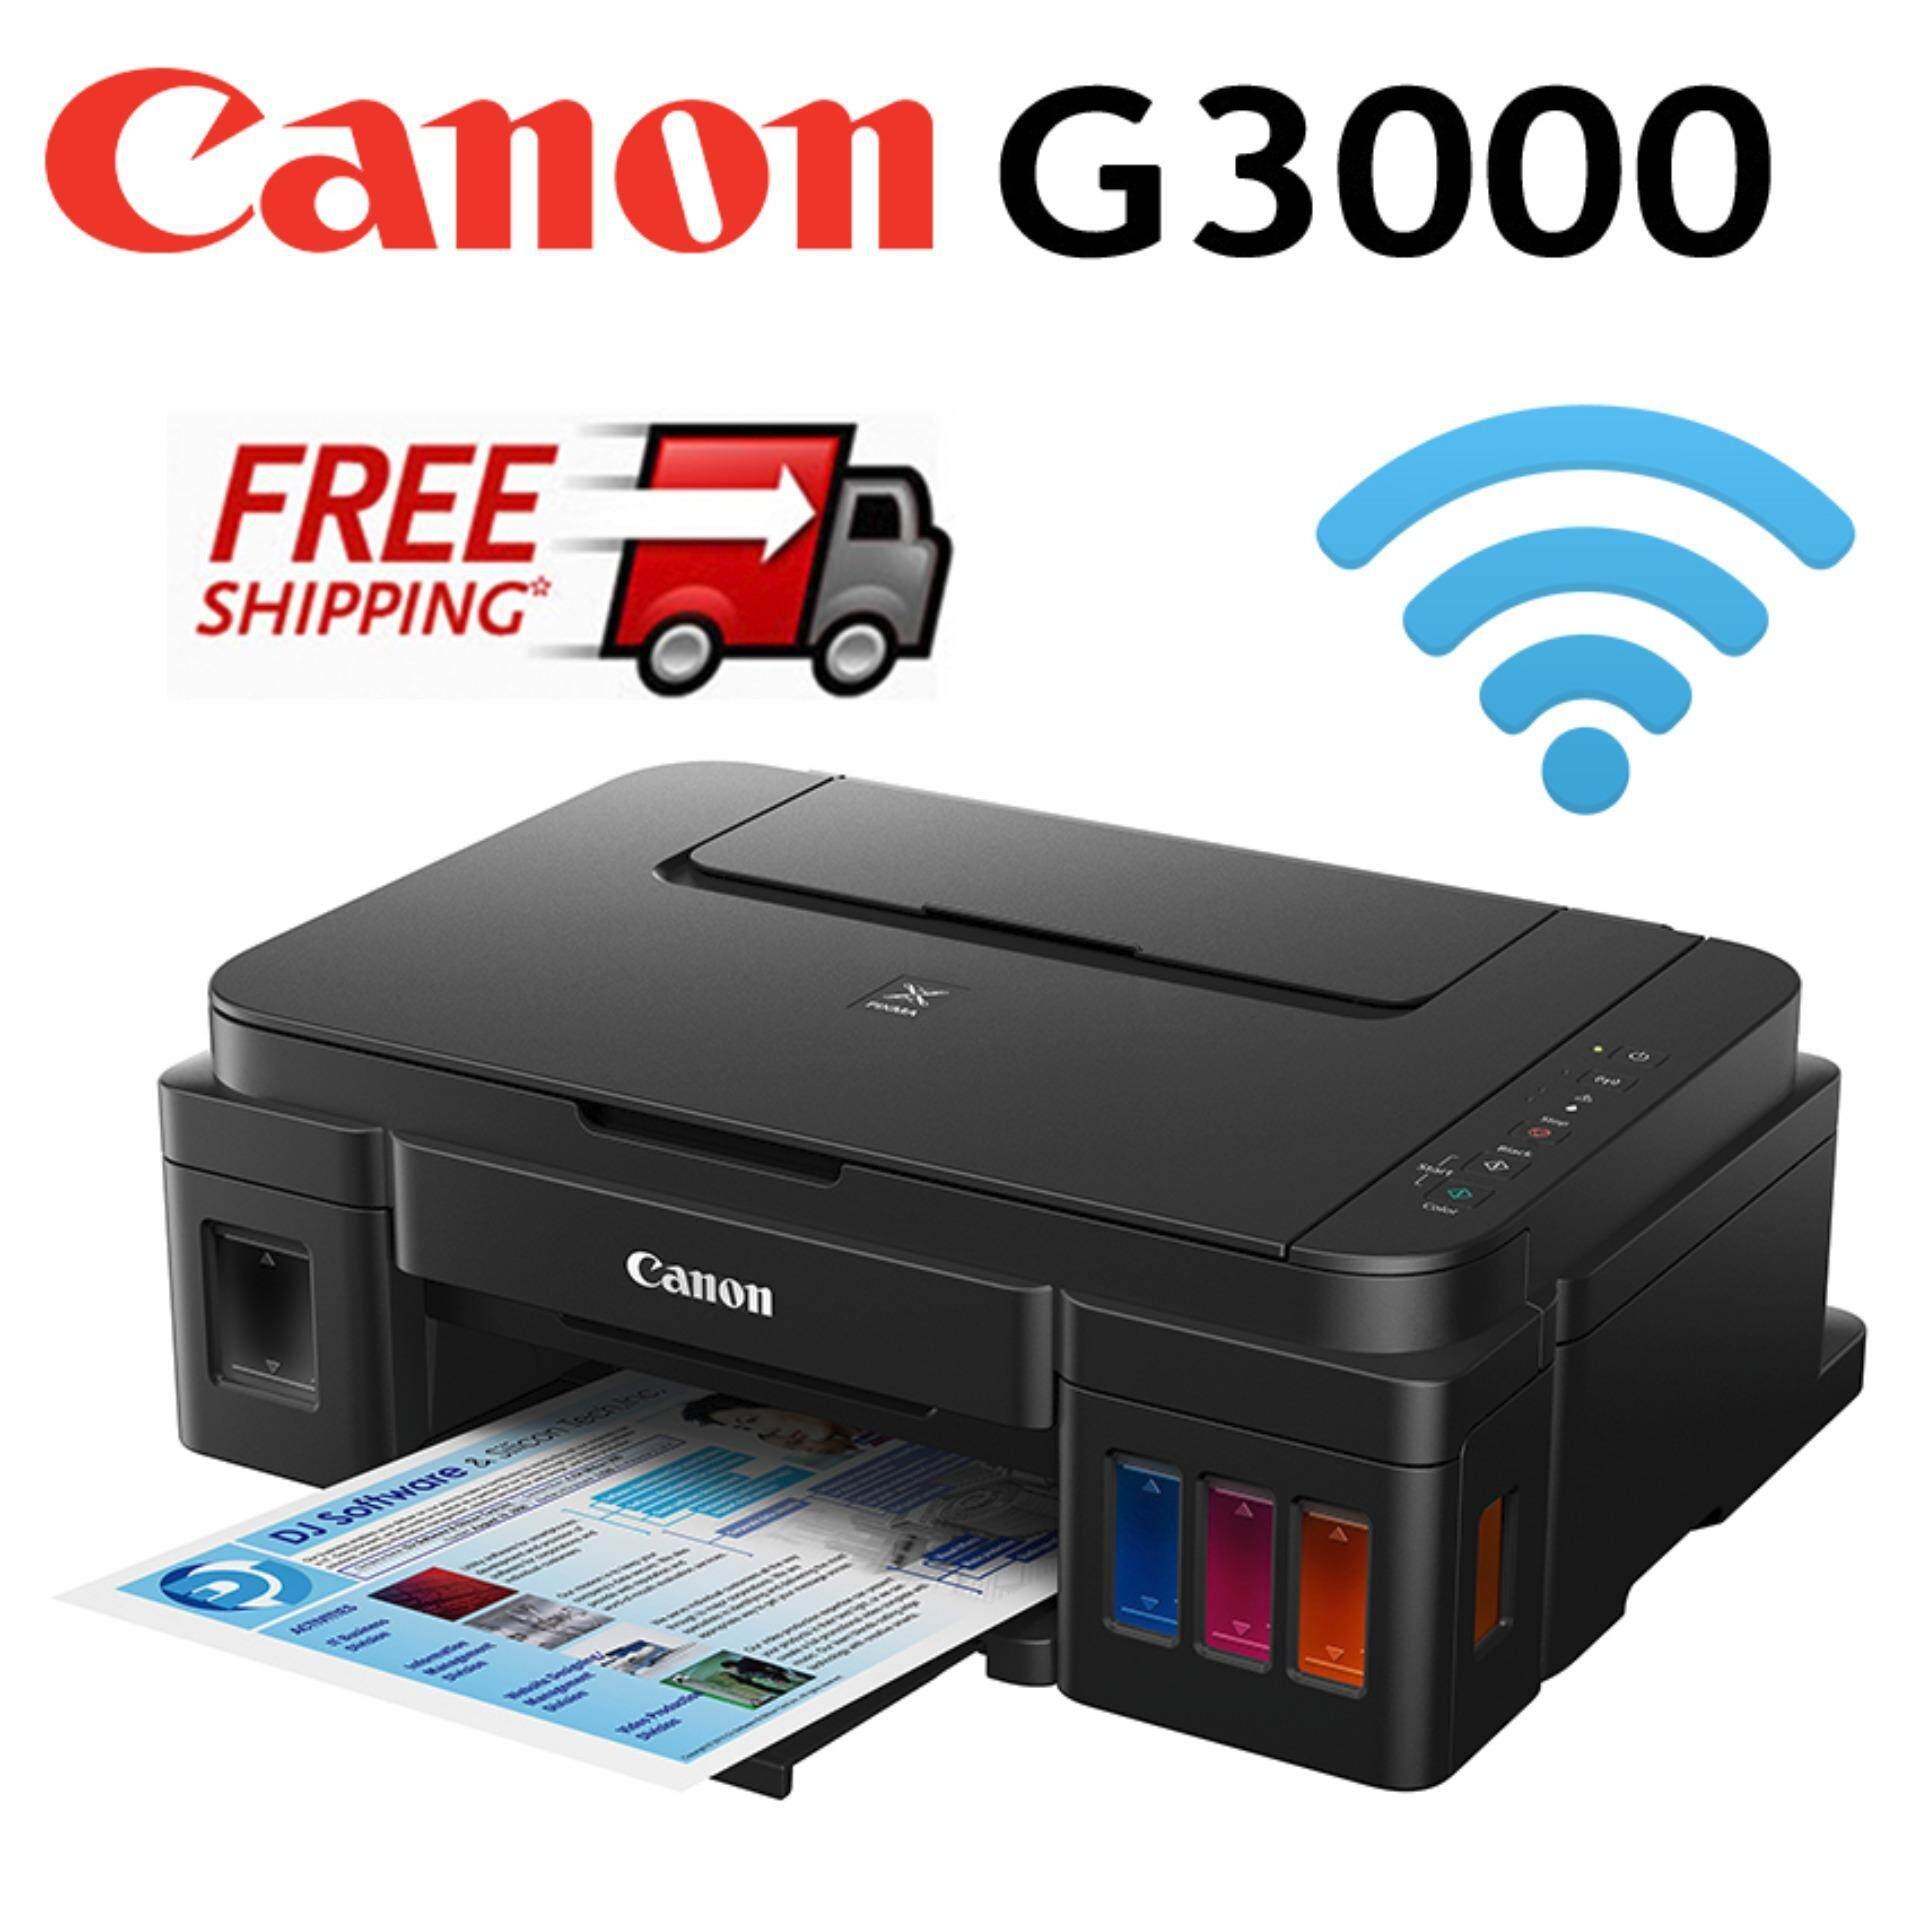 Canon Pixma G3000 Refillable Ink Tank Wireless All In One Printer With Hybrid Similar To Epson L385 Malaysia E510 Multifunction Inkjet